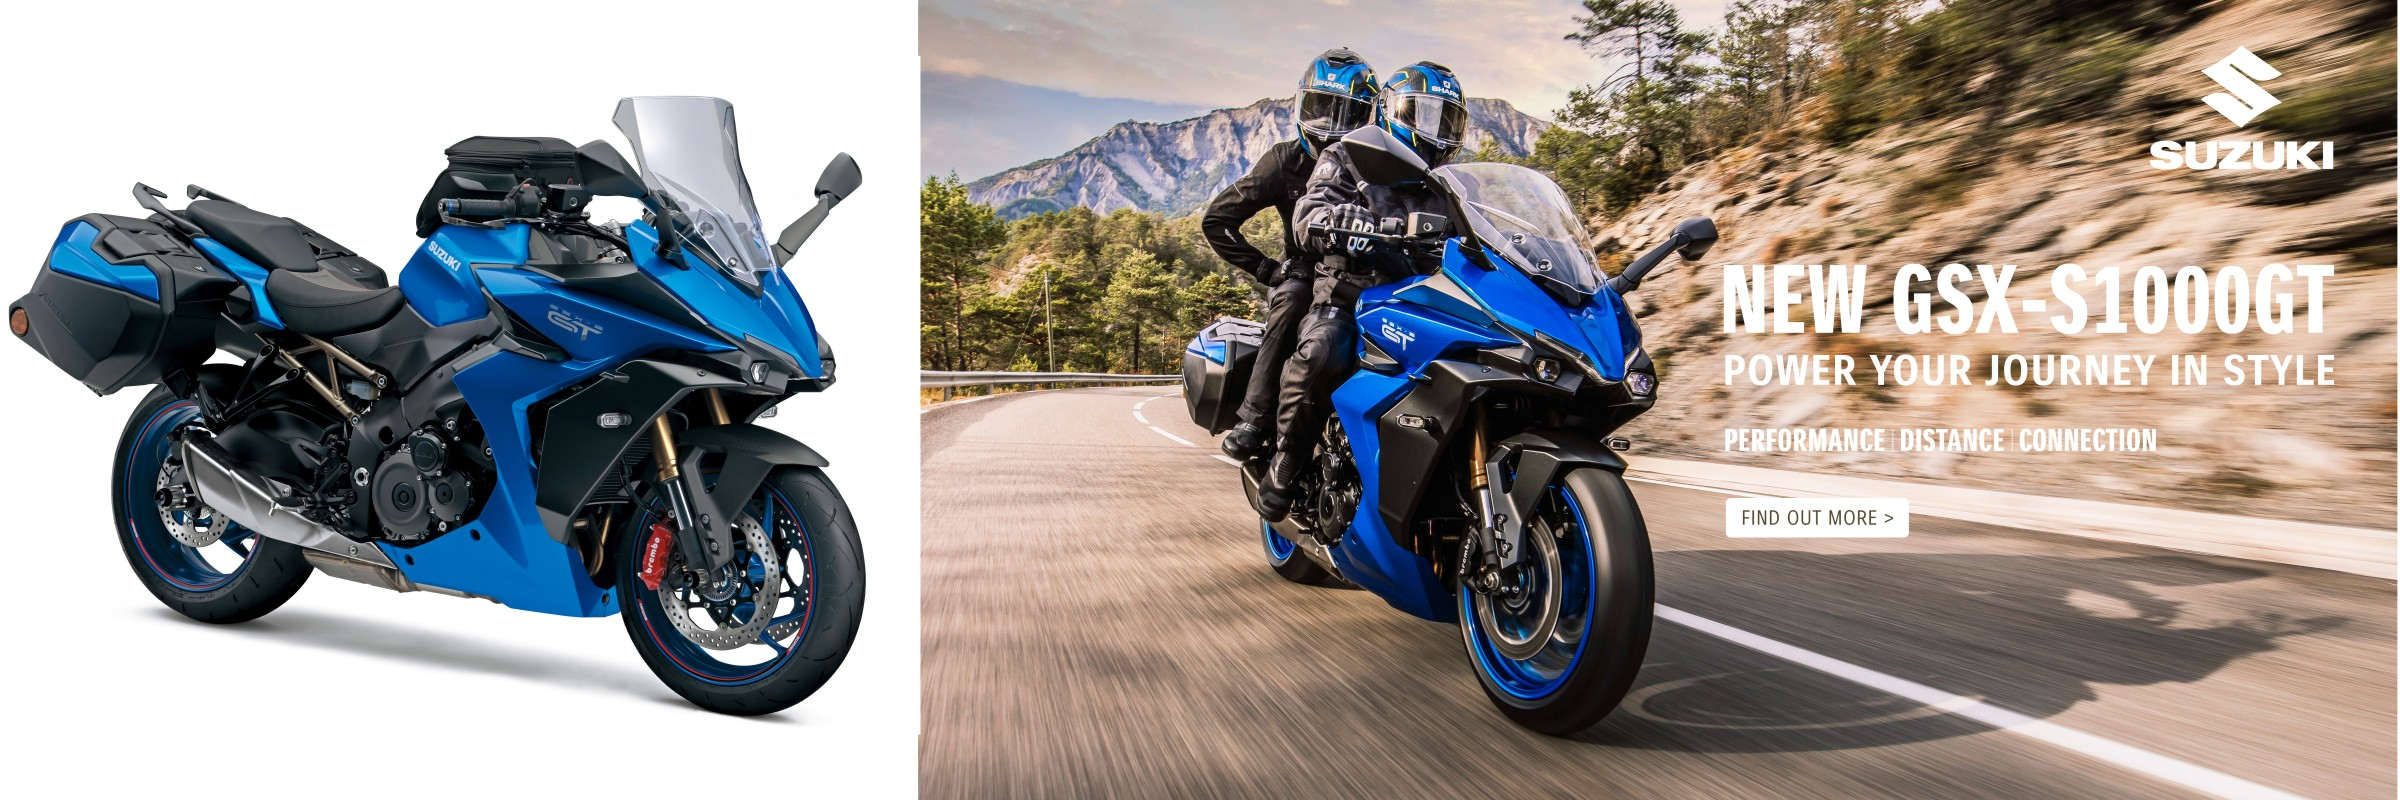 Never been easier to own a new Suzuki